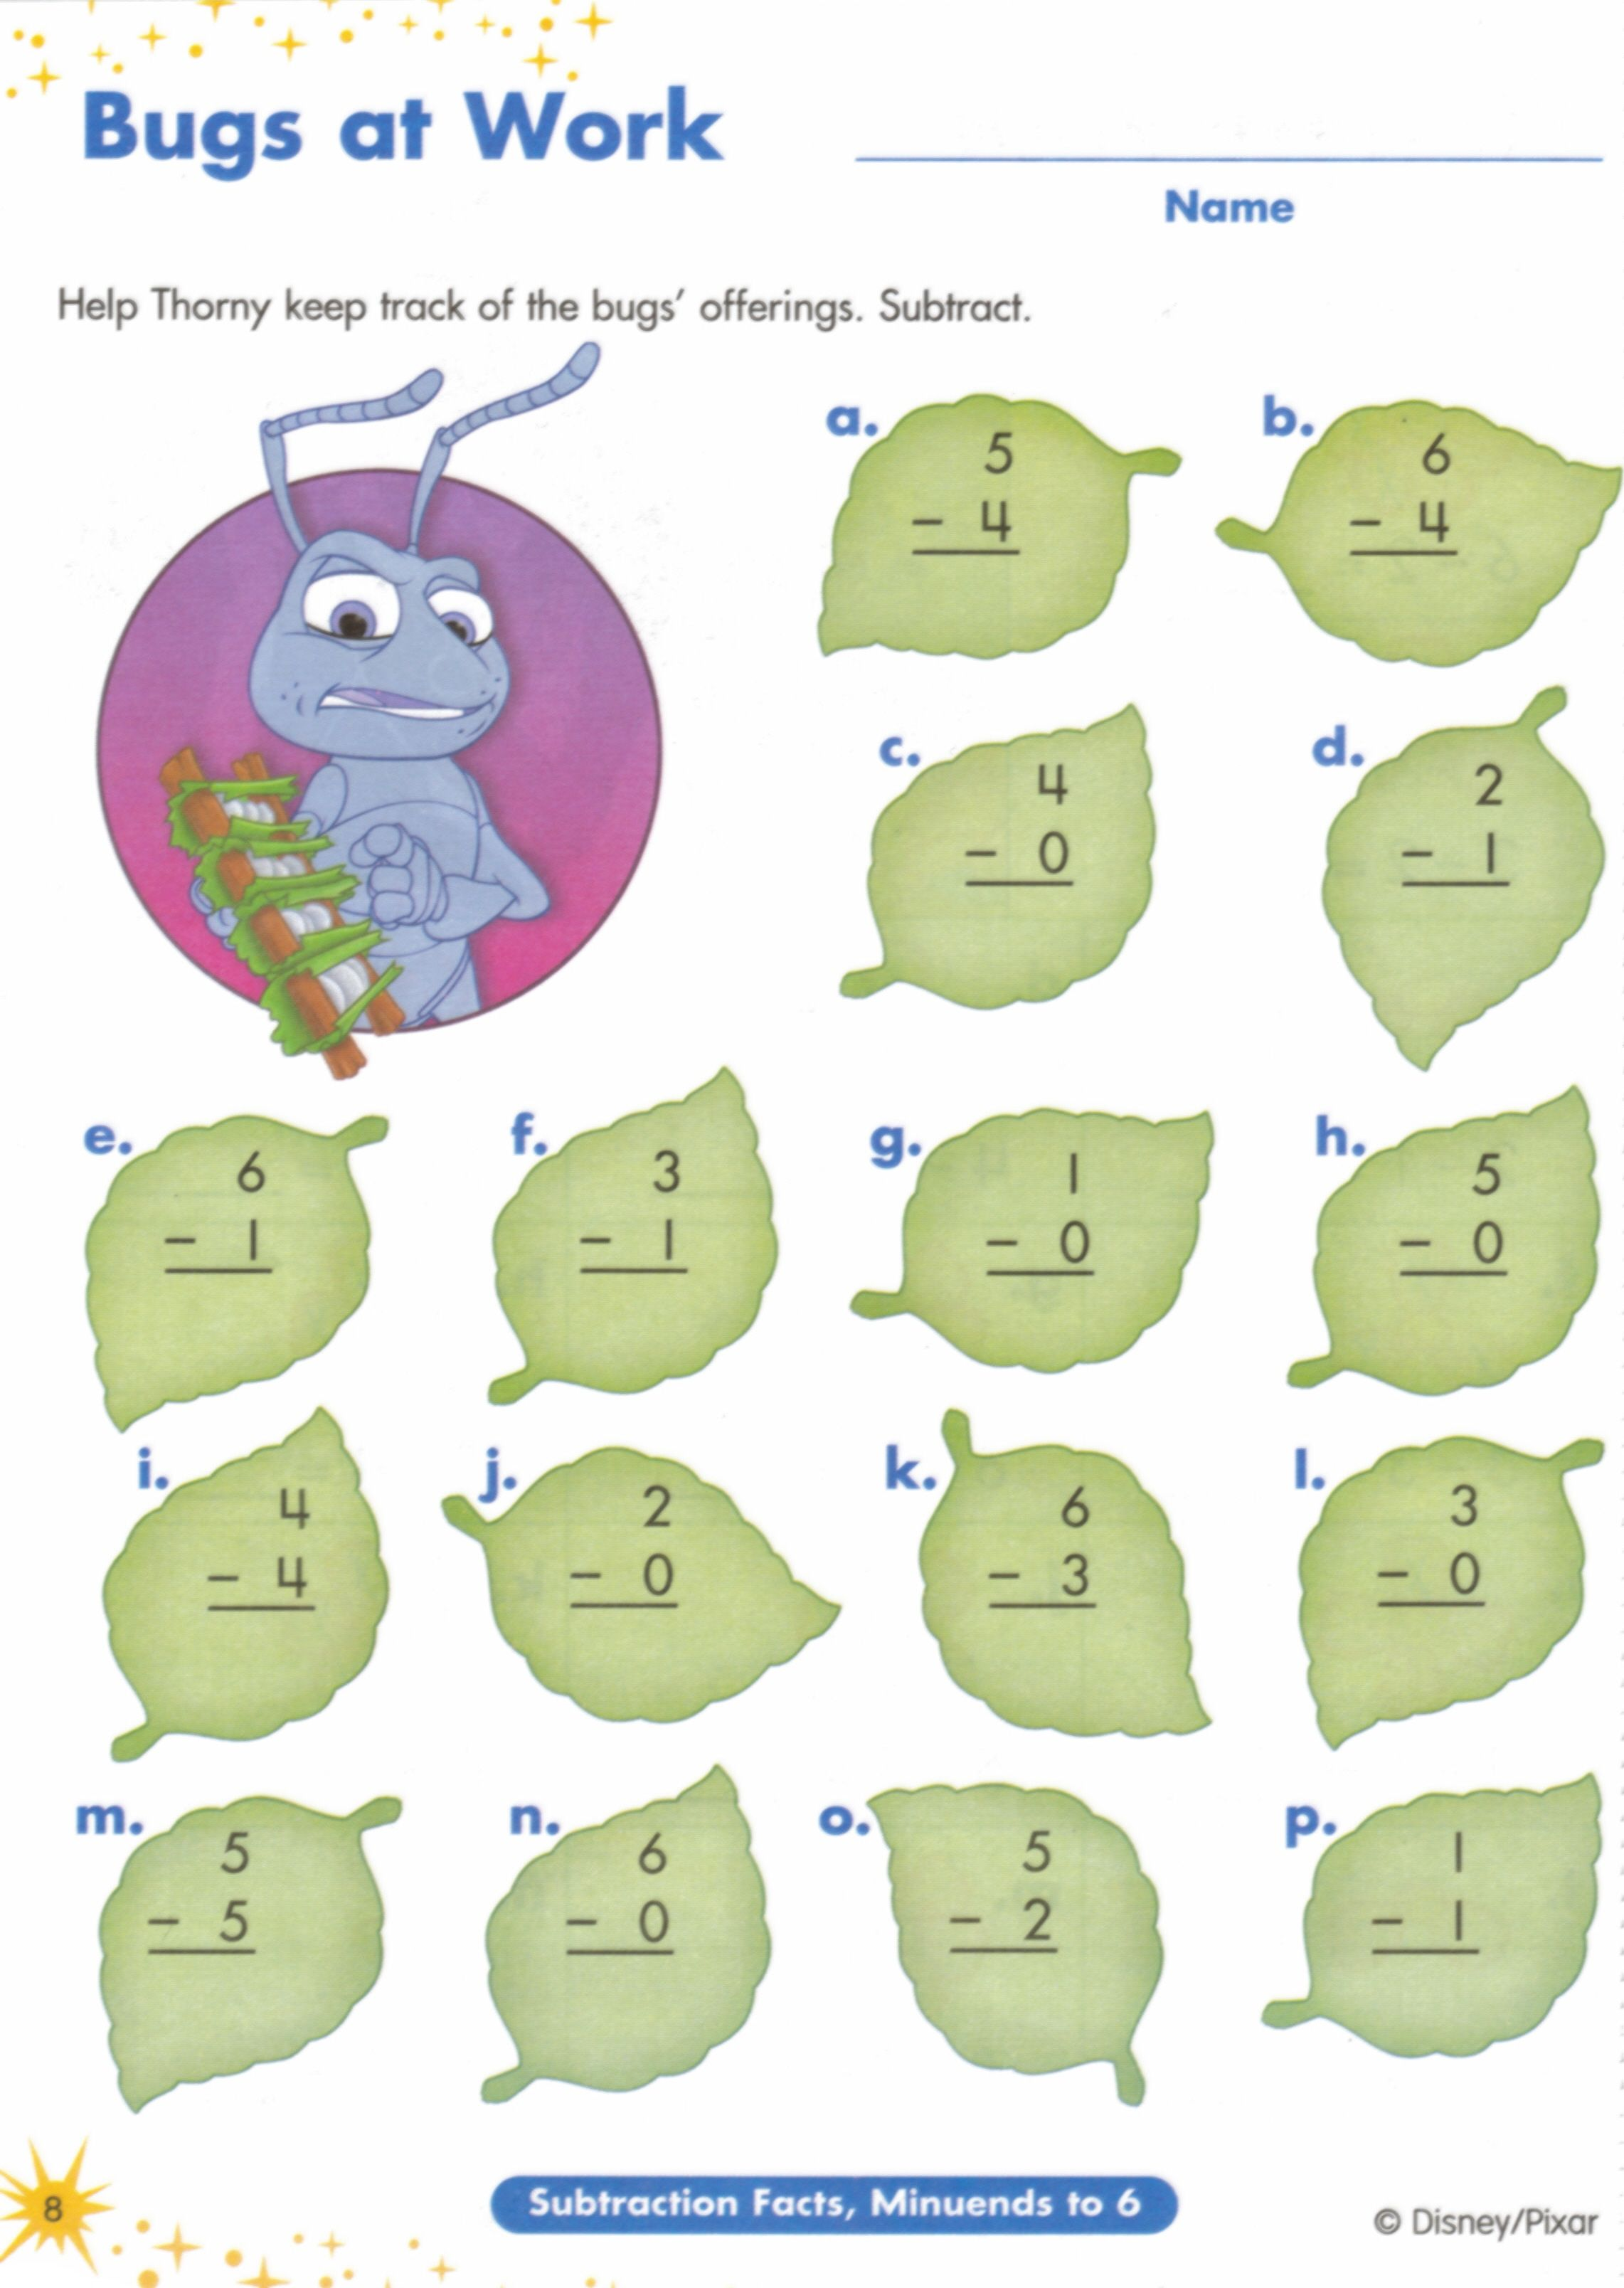 Proatmealus  Splendid  Images About Worksheets On Pinterest  Fun Facts For Kids  With Licious  Images About Worksheets On Pinterest  Fun Facts For Kids Earth Day Worksheets And Jungles With Attractive Home Renovation Budget Worksheet Also Learning Colors Worksheet In Addition Free Cursive Handwriting Worksheet Generator And Worksheets On Counting Money As Well As Number Of The Day Worksheets Additionally Simple Math Equations Worksheets From Pinterestcom With Proatmealus  Licious  Images About Worksheets On Pinterest  Fun Facts For Kids  With Attractive  Images About Worksheets On Pinterest  Fun Facts For Kids Earth Day Worksheets And Jungles And Splendid Home Renovation Budget Worksheet Also Learning Colors Worksheet In Addition Free Cursive Handwriting Worksheet Generator From Pinterestcom